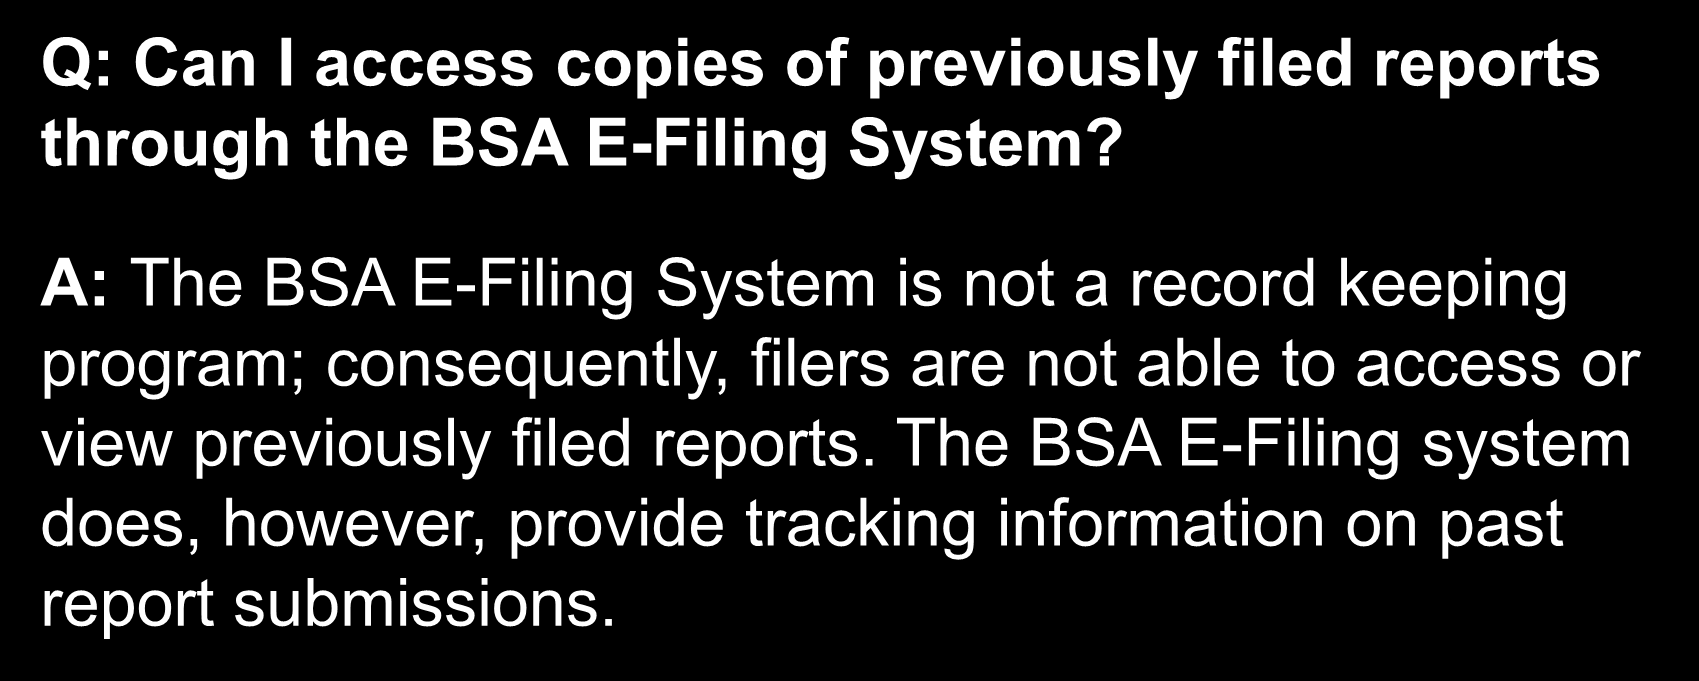 Frequently Asked Questions Q: Can I access copies of previously filed reports through the BSA E-Filing System?